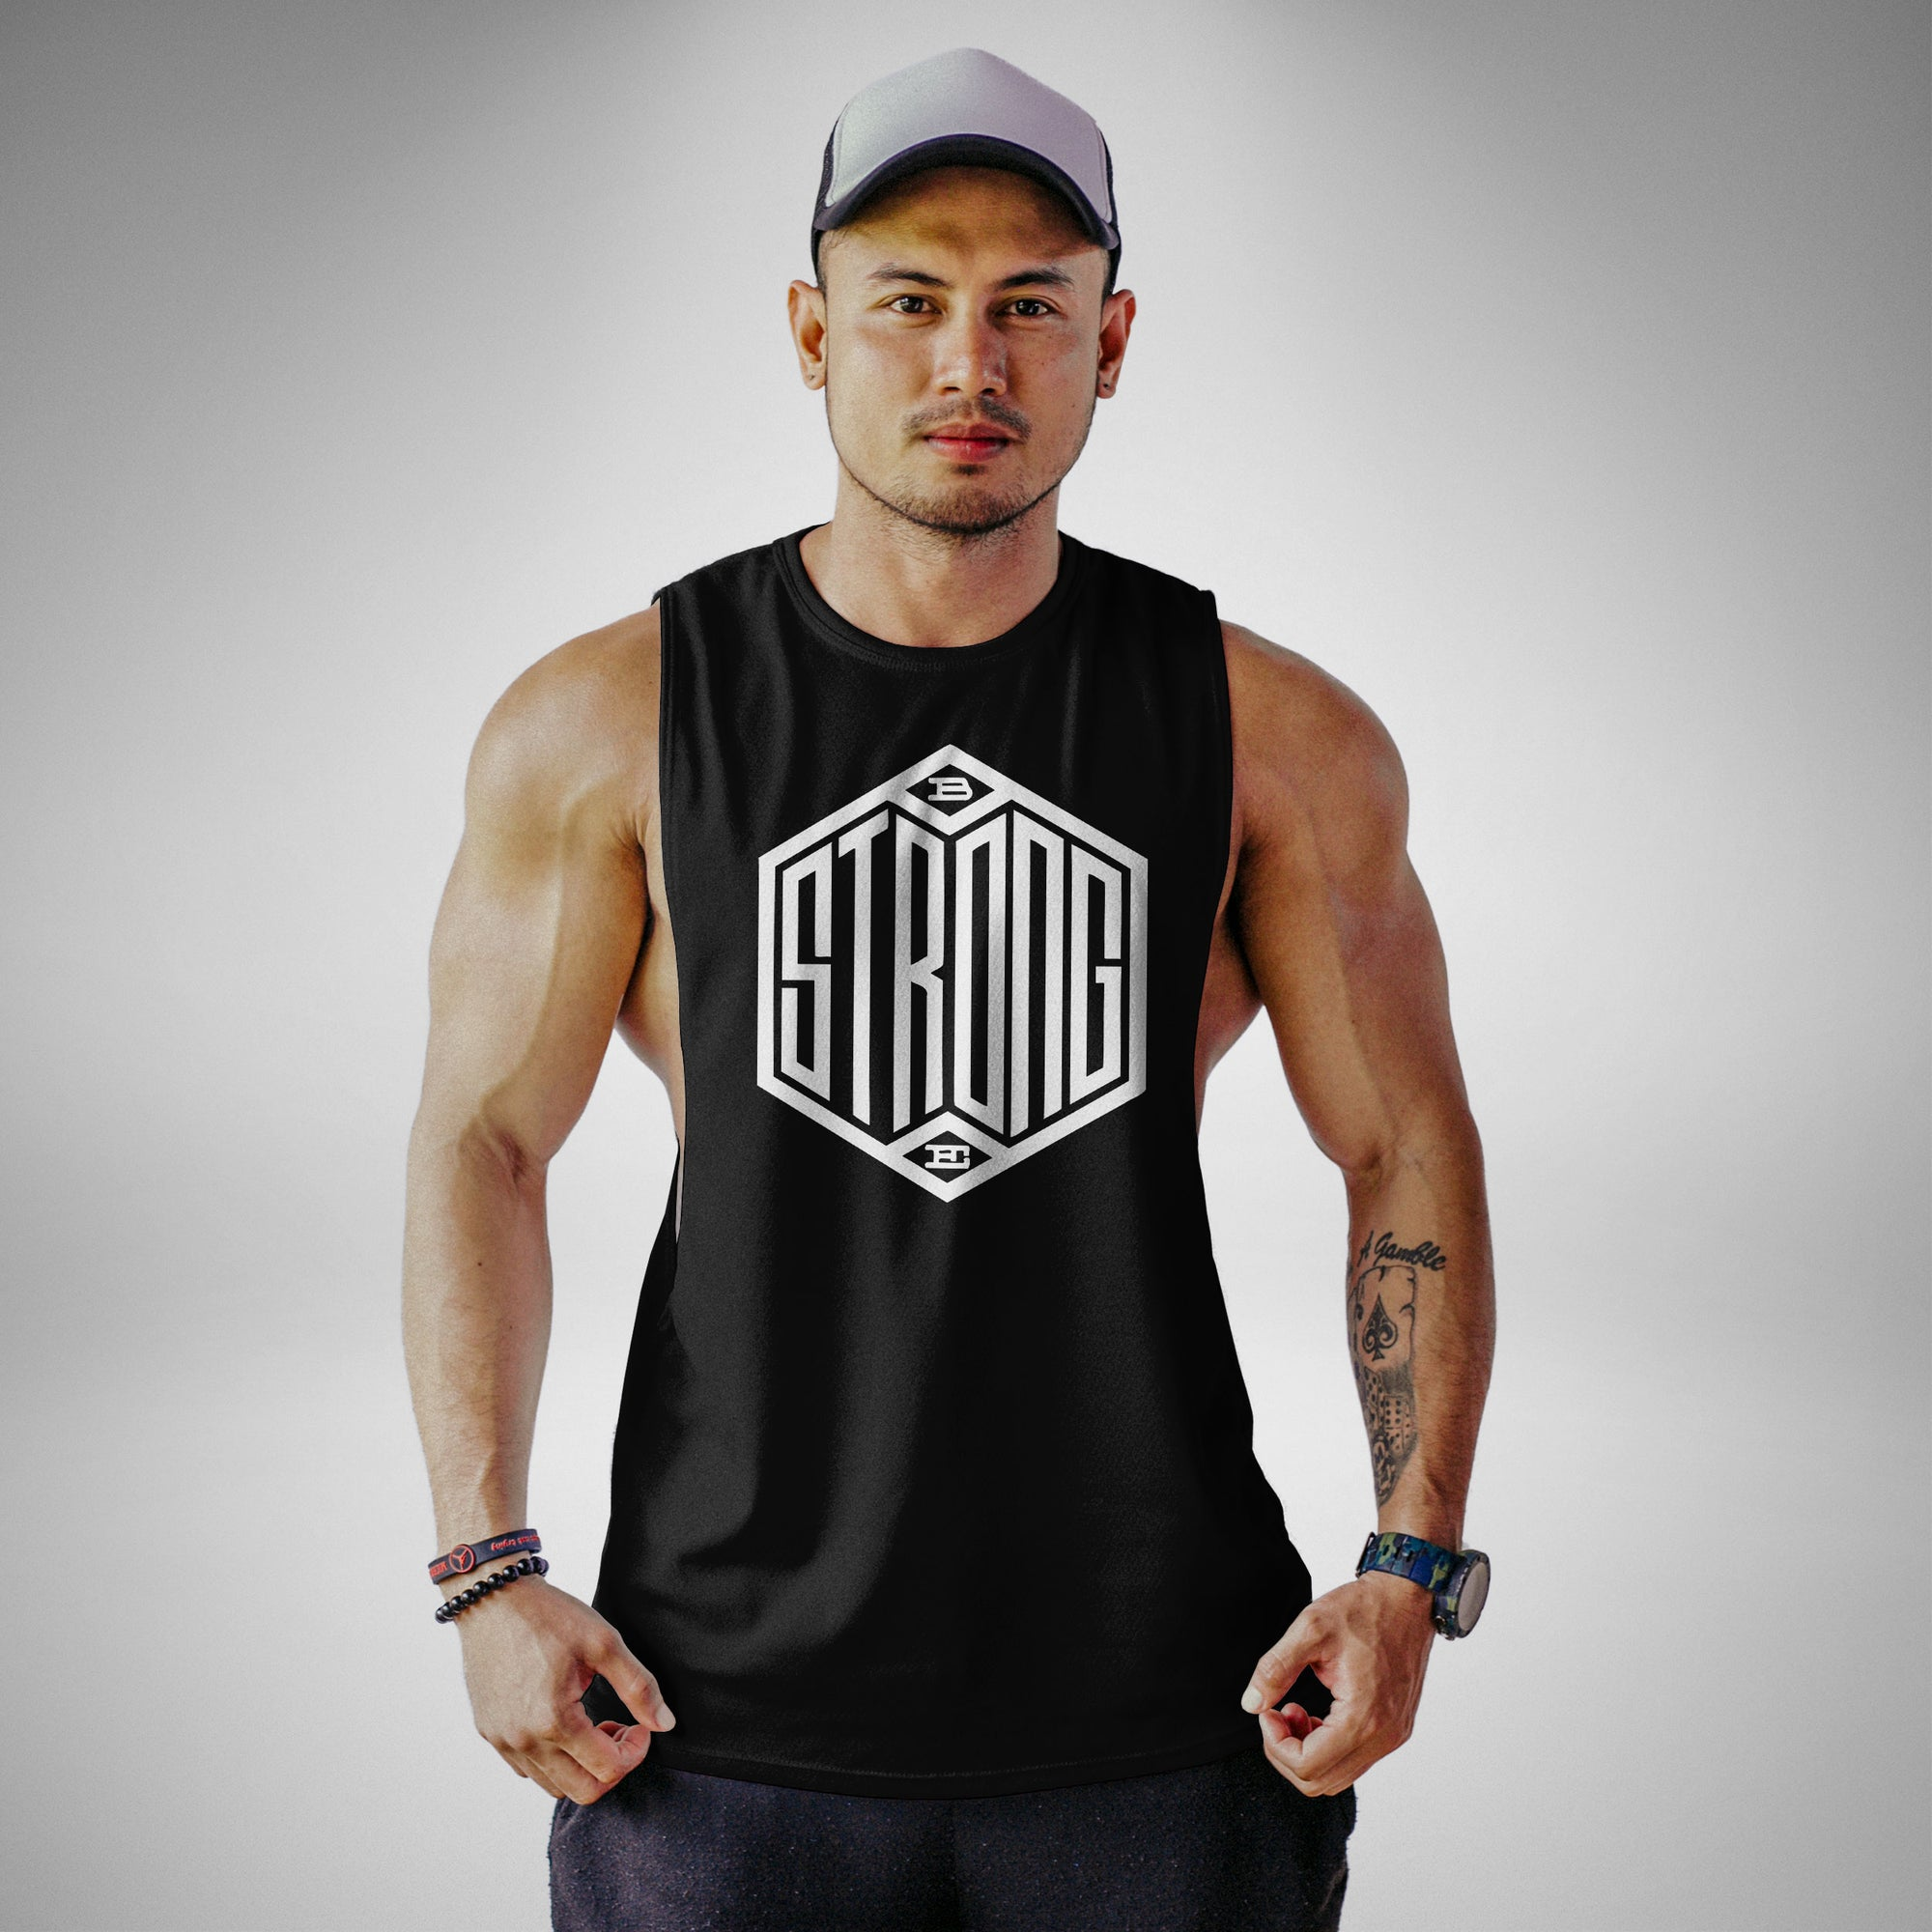 AM104 Be Strong Openside Tank Top